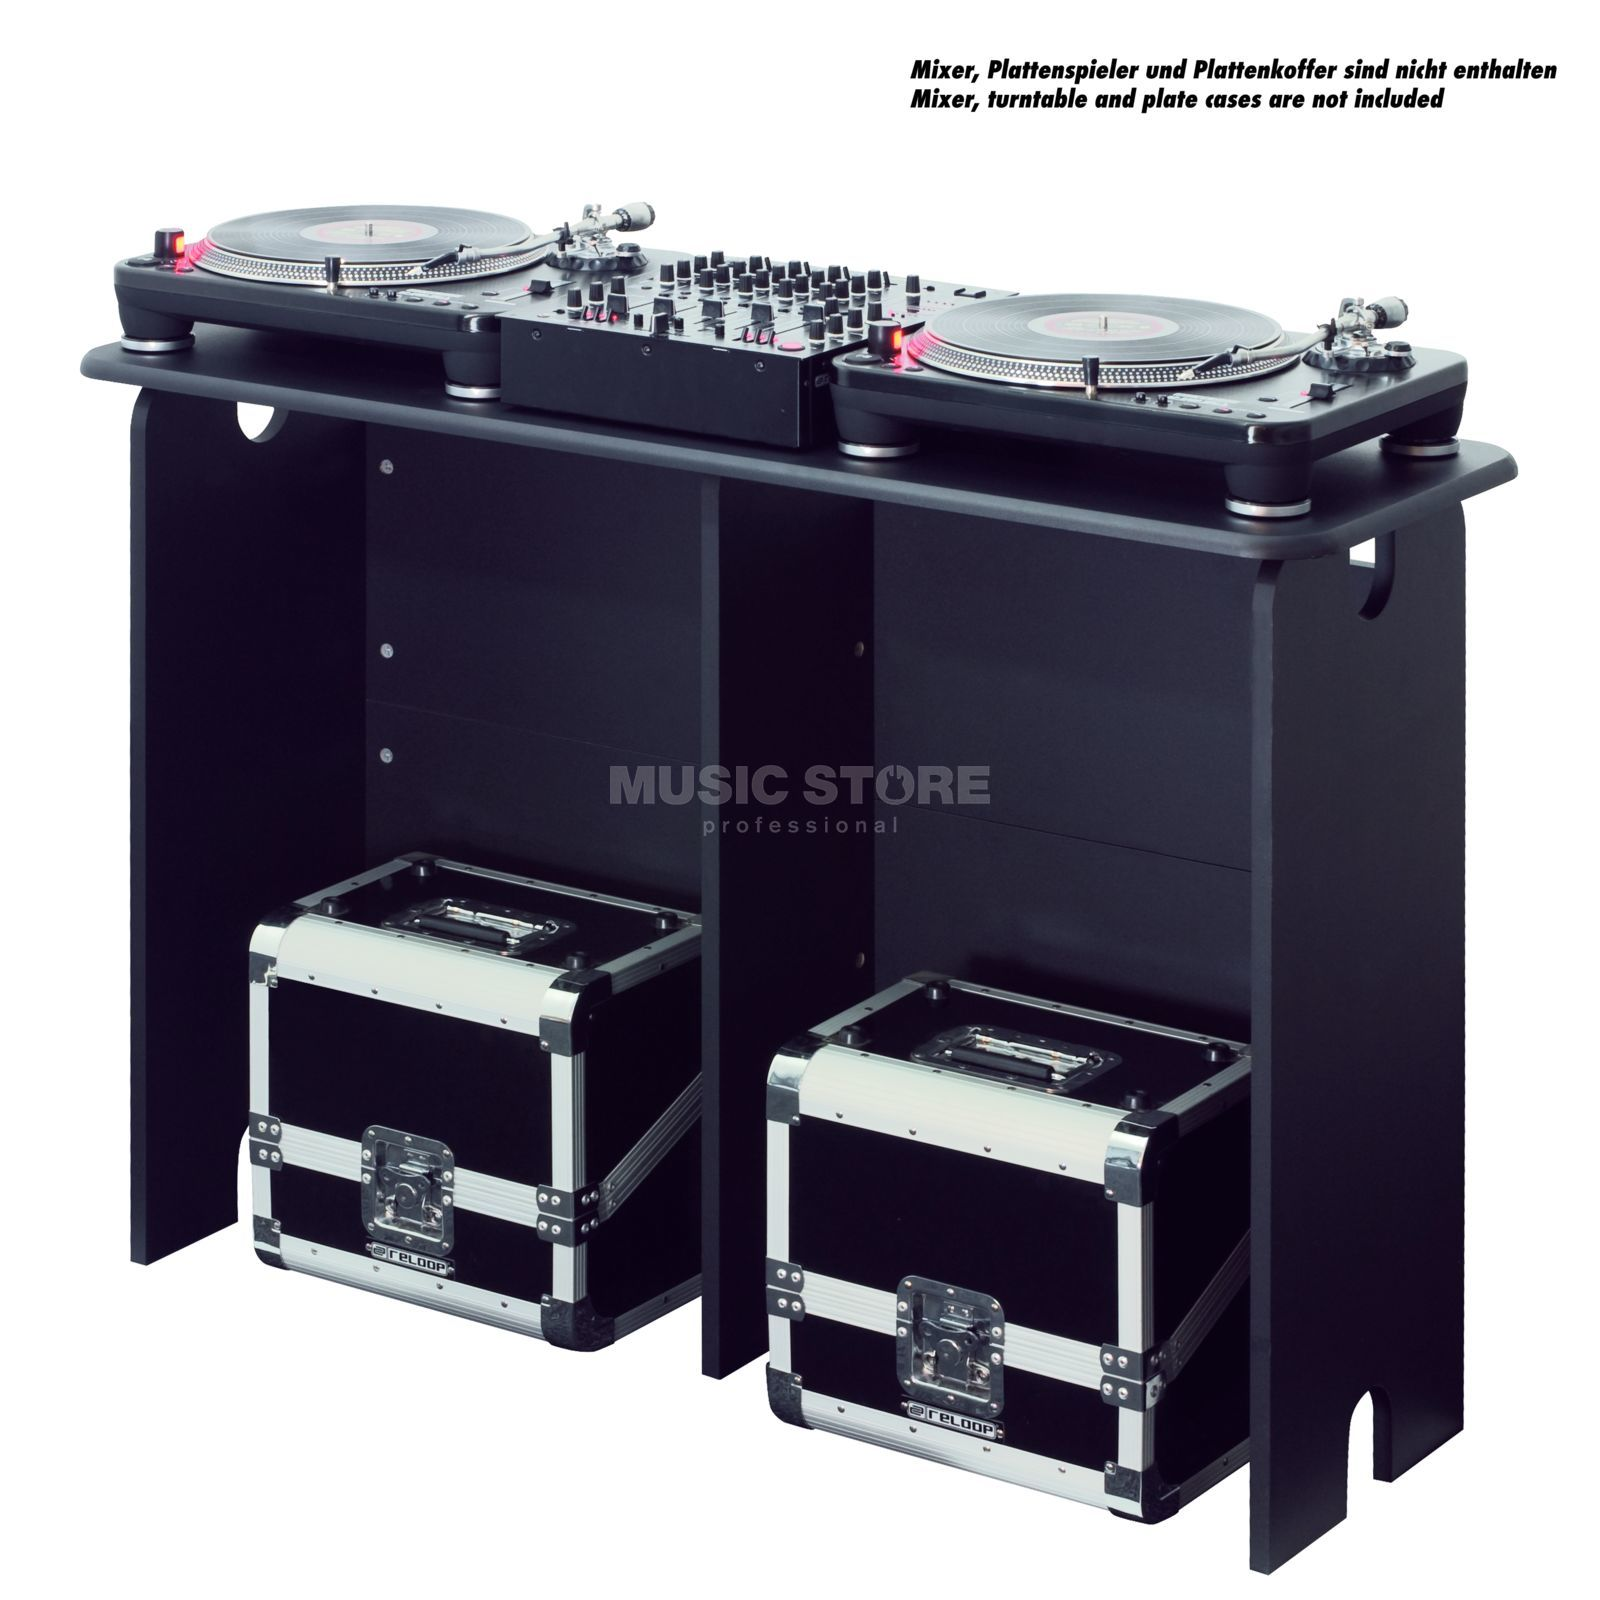 Glorious Mix Station DJ Table black Zdjęcie produktu